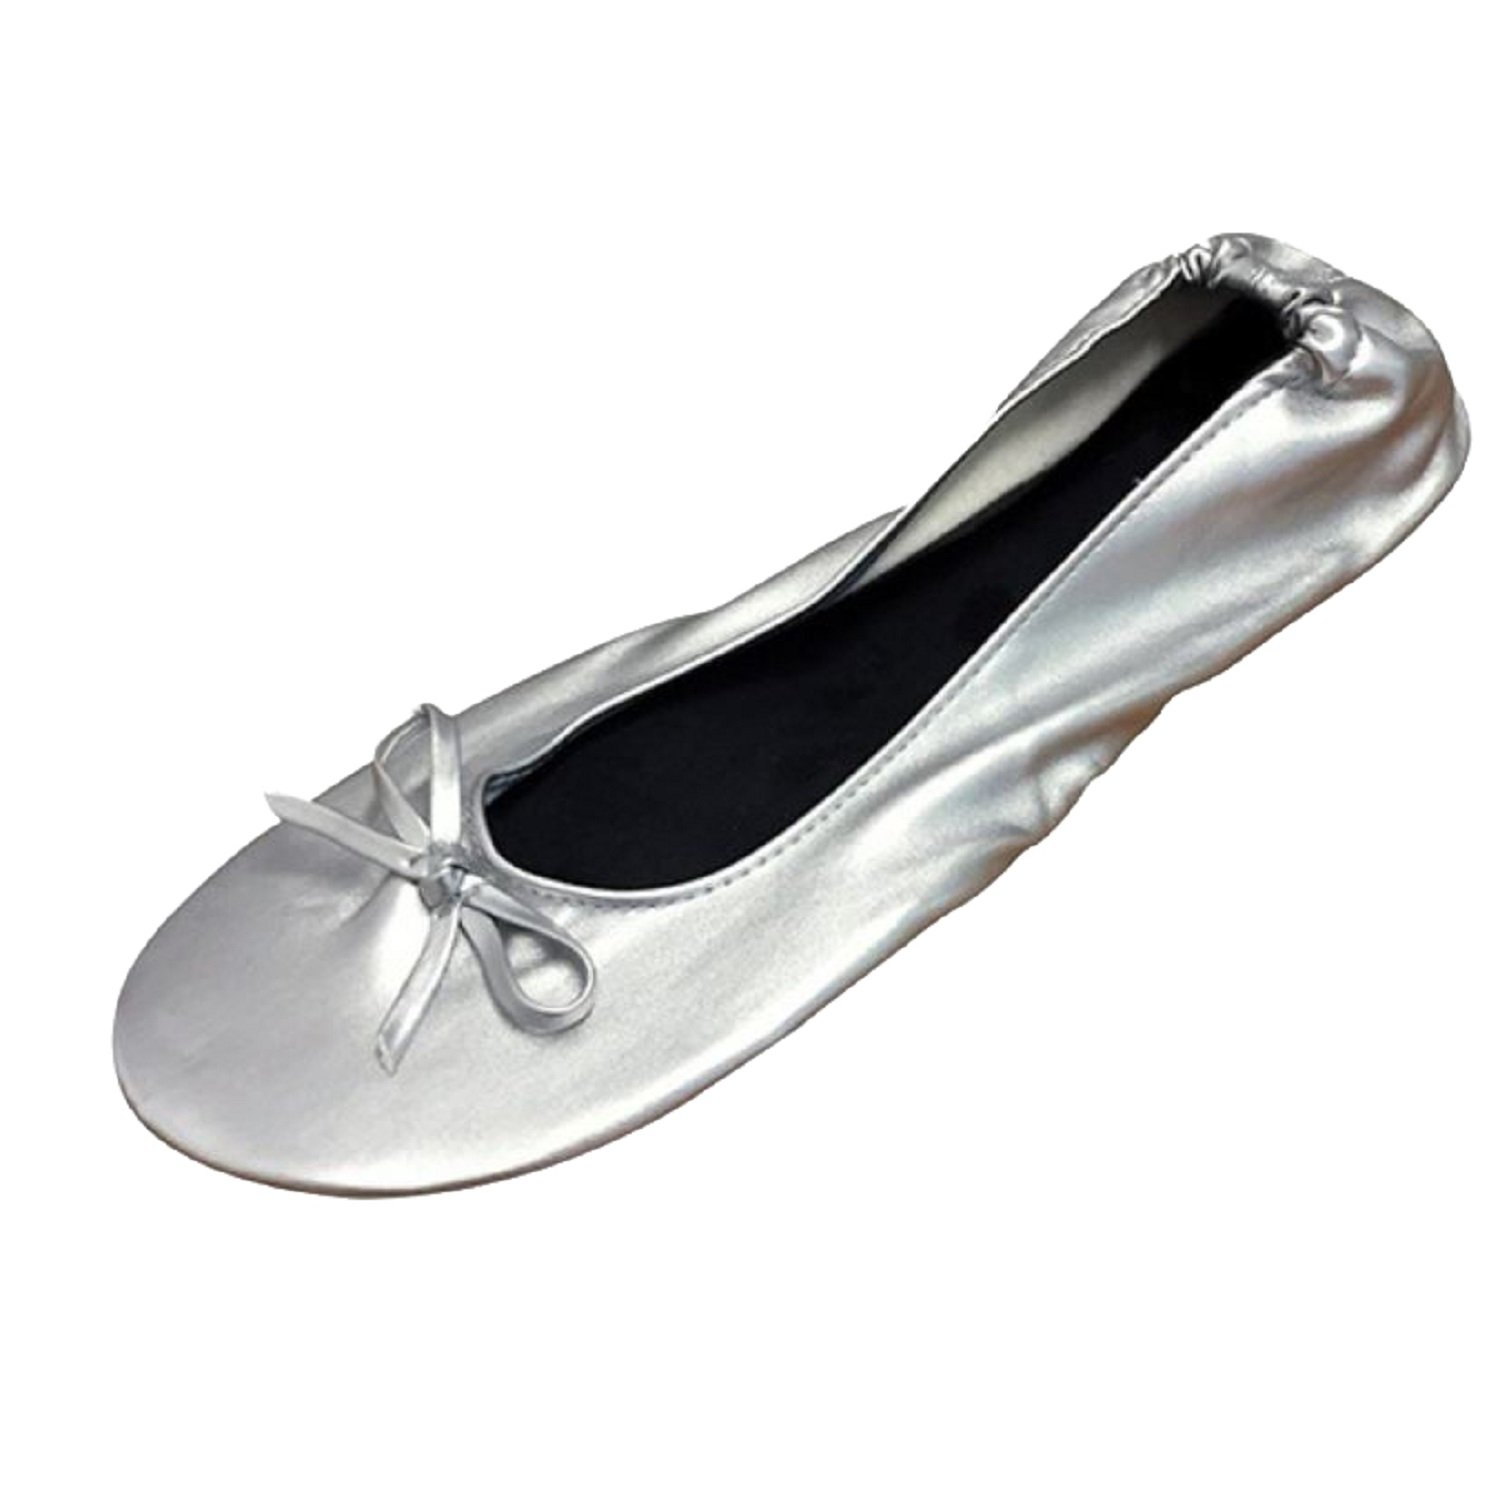 Women's Ballet Flats - Foldable Flats WITH EXPANDABLE TOTE BAG - Great for Weddings Brides Bridal Parties, Bridesmaid Shoes, Expandable Tote Bag for Carrying High Heels -Fancy Flat SILVER shoes - Best PORTABLE Travel SHOES fold up ballet shoes (Medium = 7